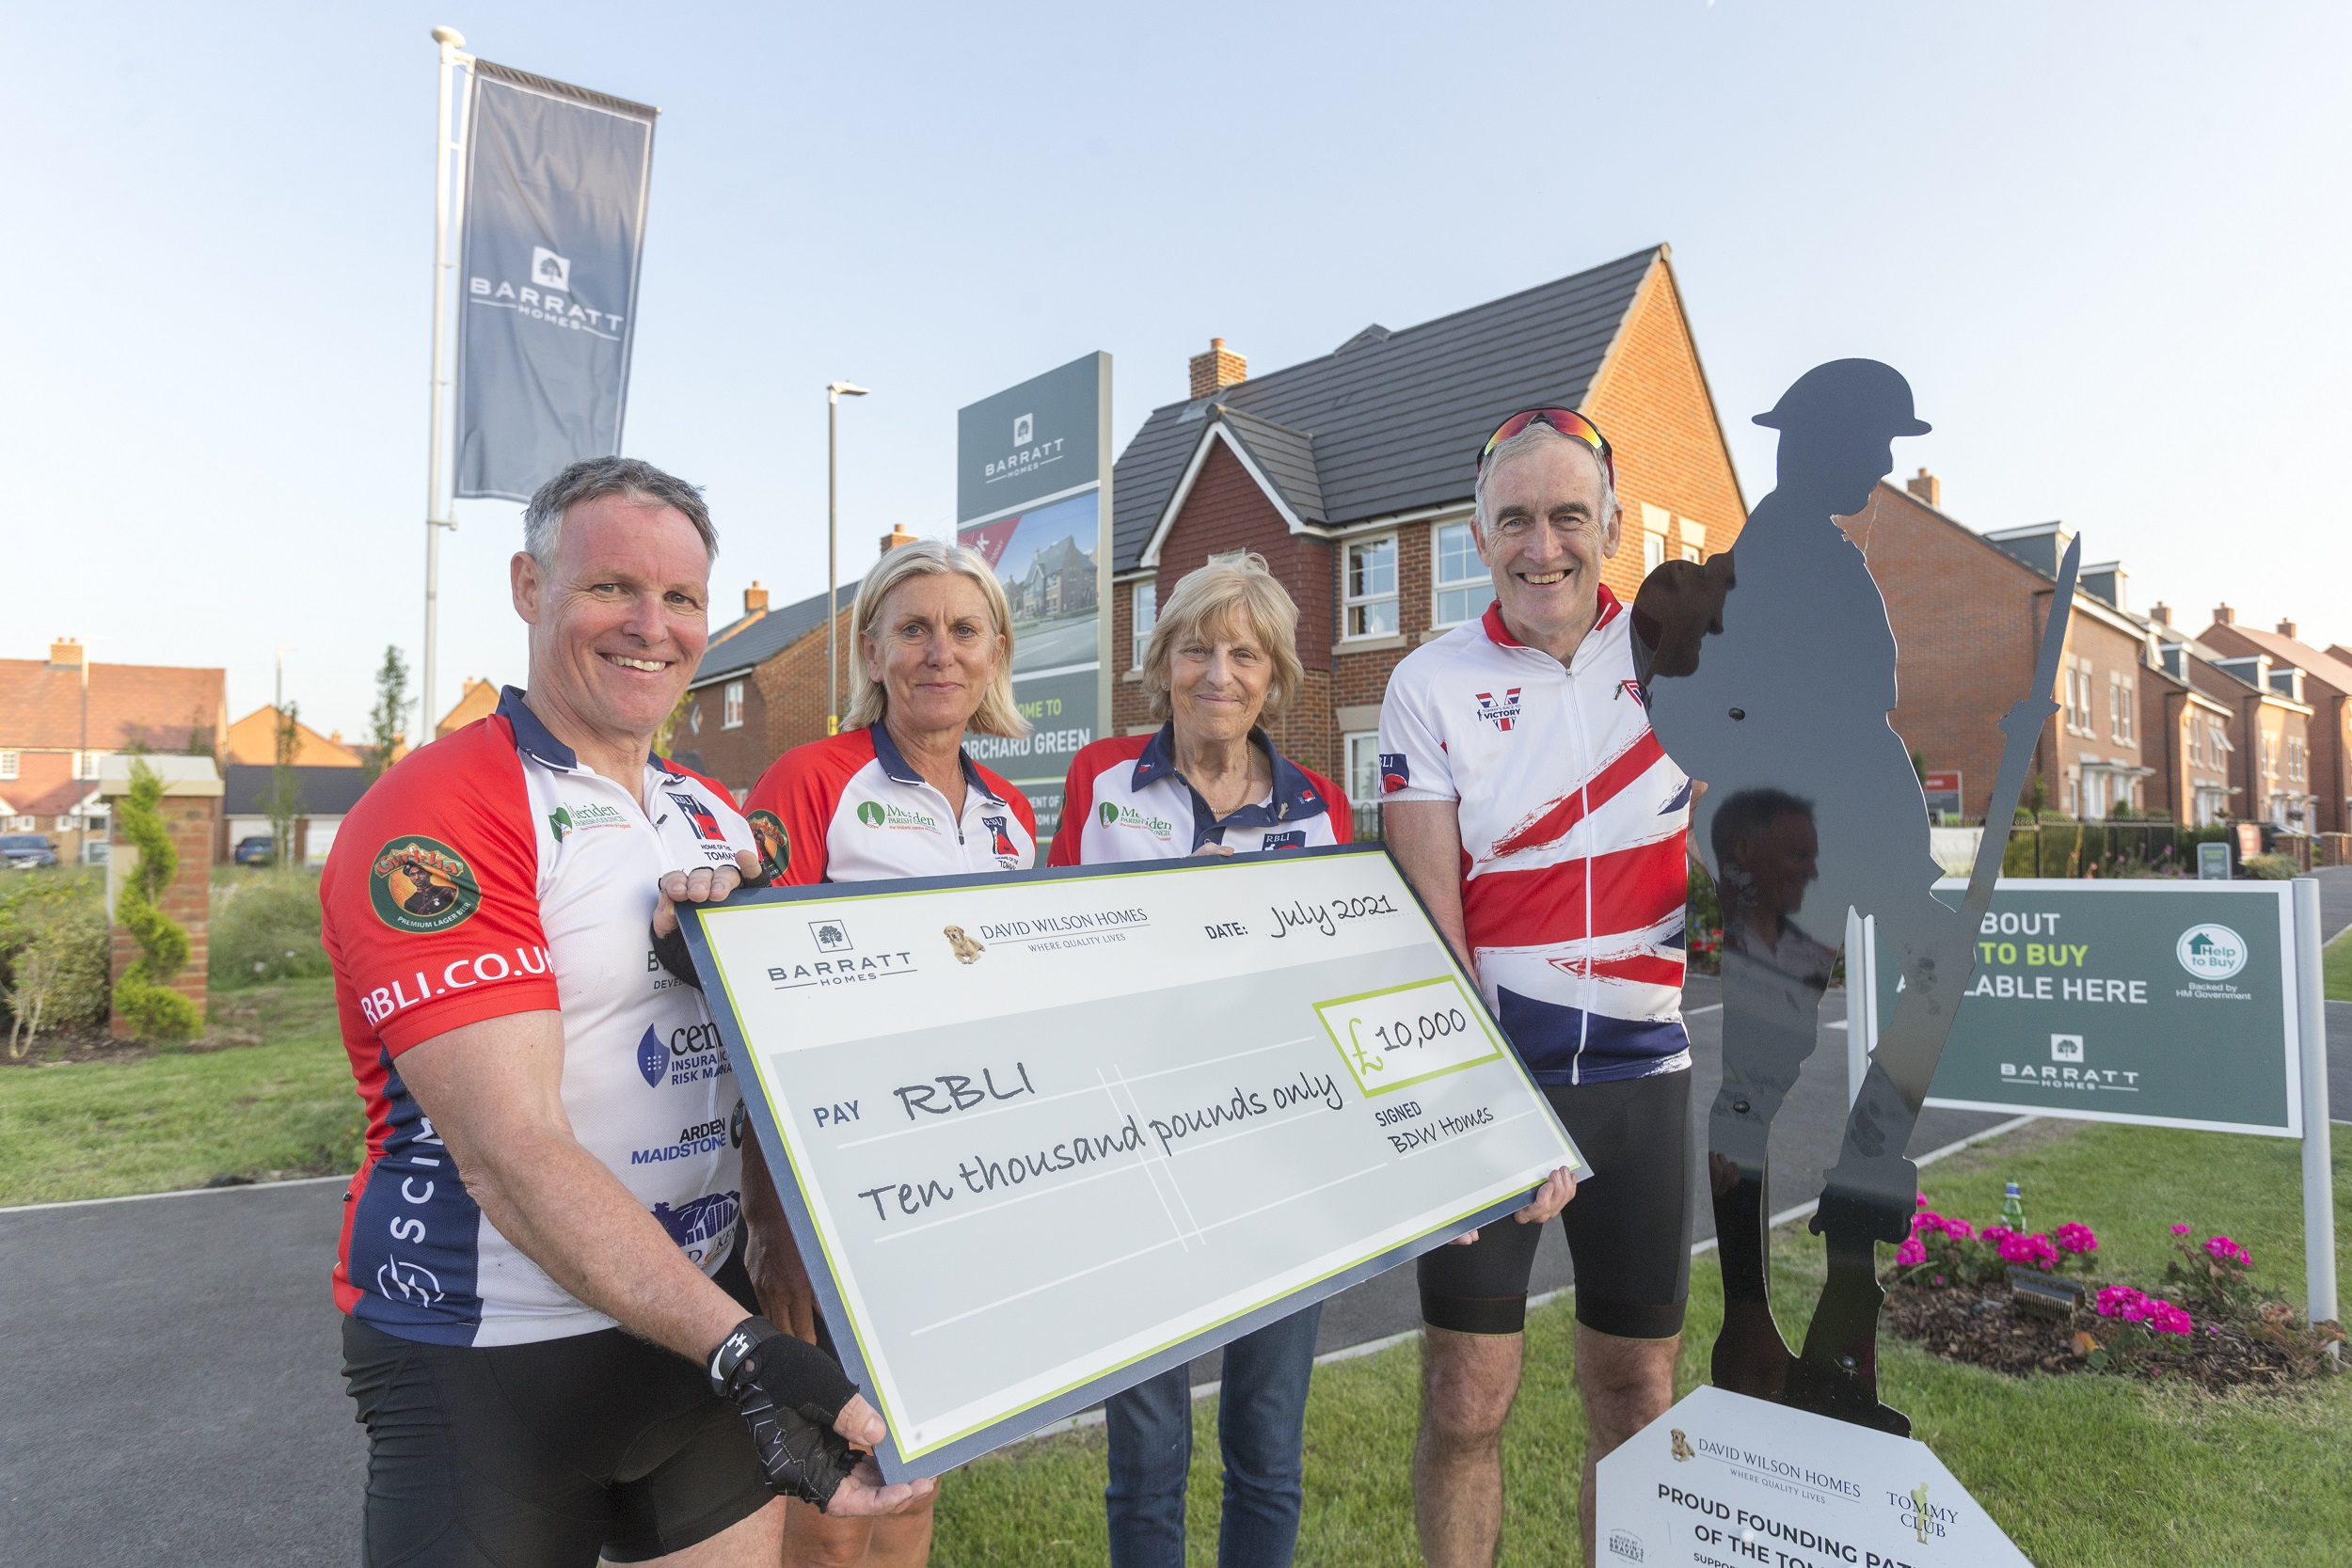 BARRATT PEDALS ITS SUPPORT FOR ROYAL BRITISH LEGION INDUSTRIES IN 150 MILE CYCLE RIDE